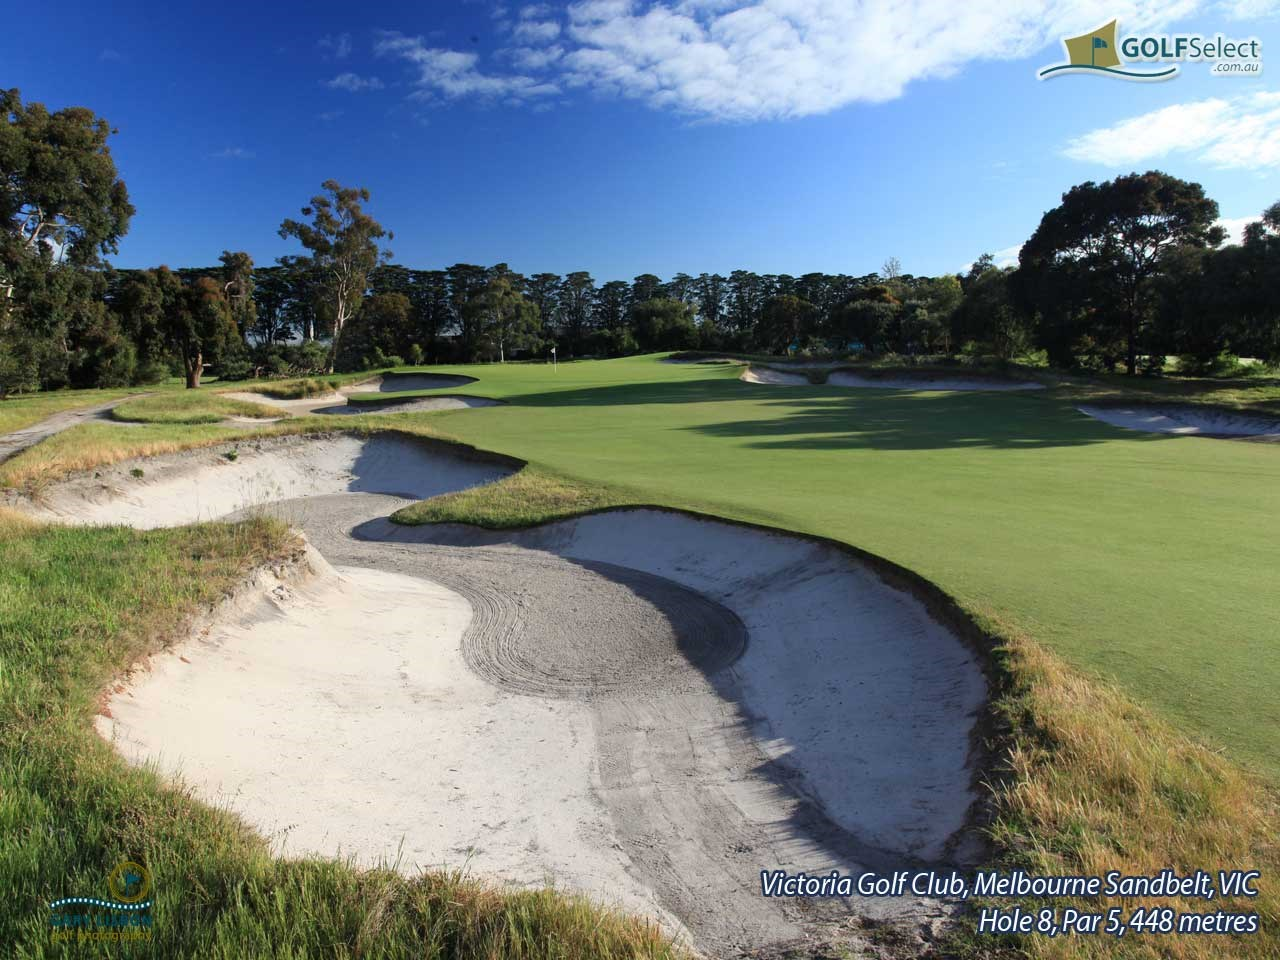 Victoria Golf Club Hole 8, Par 5, 448 metres